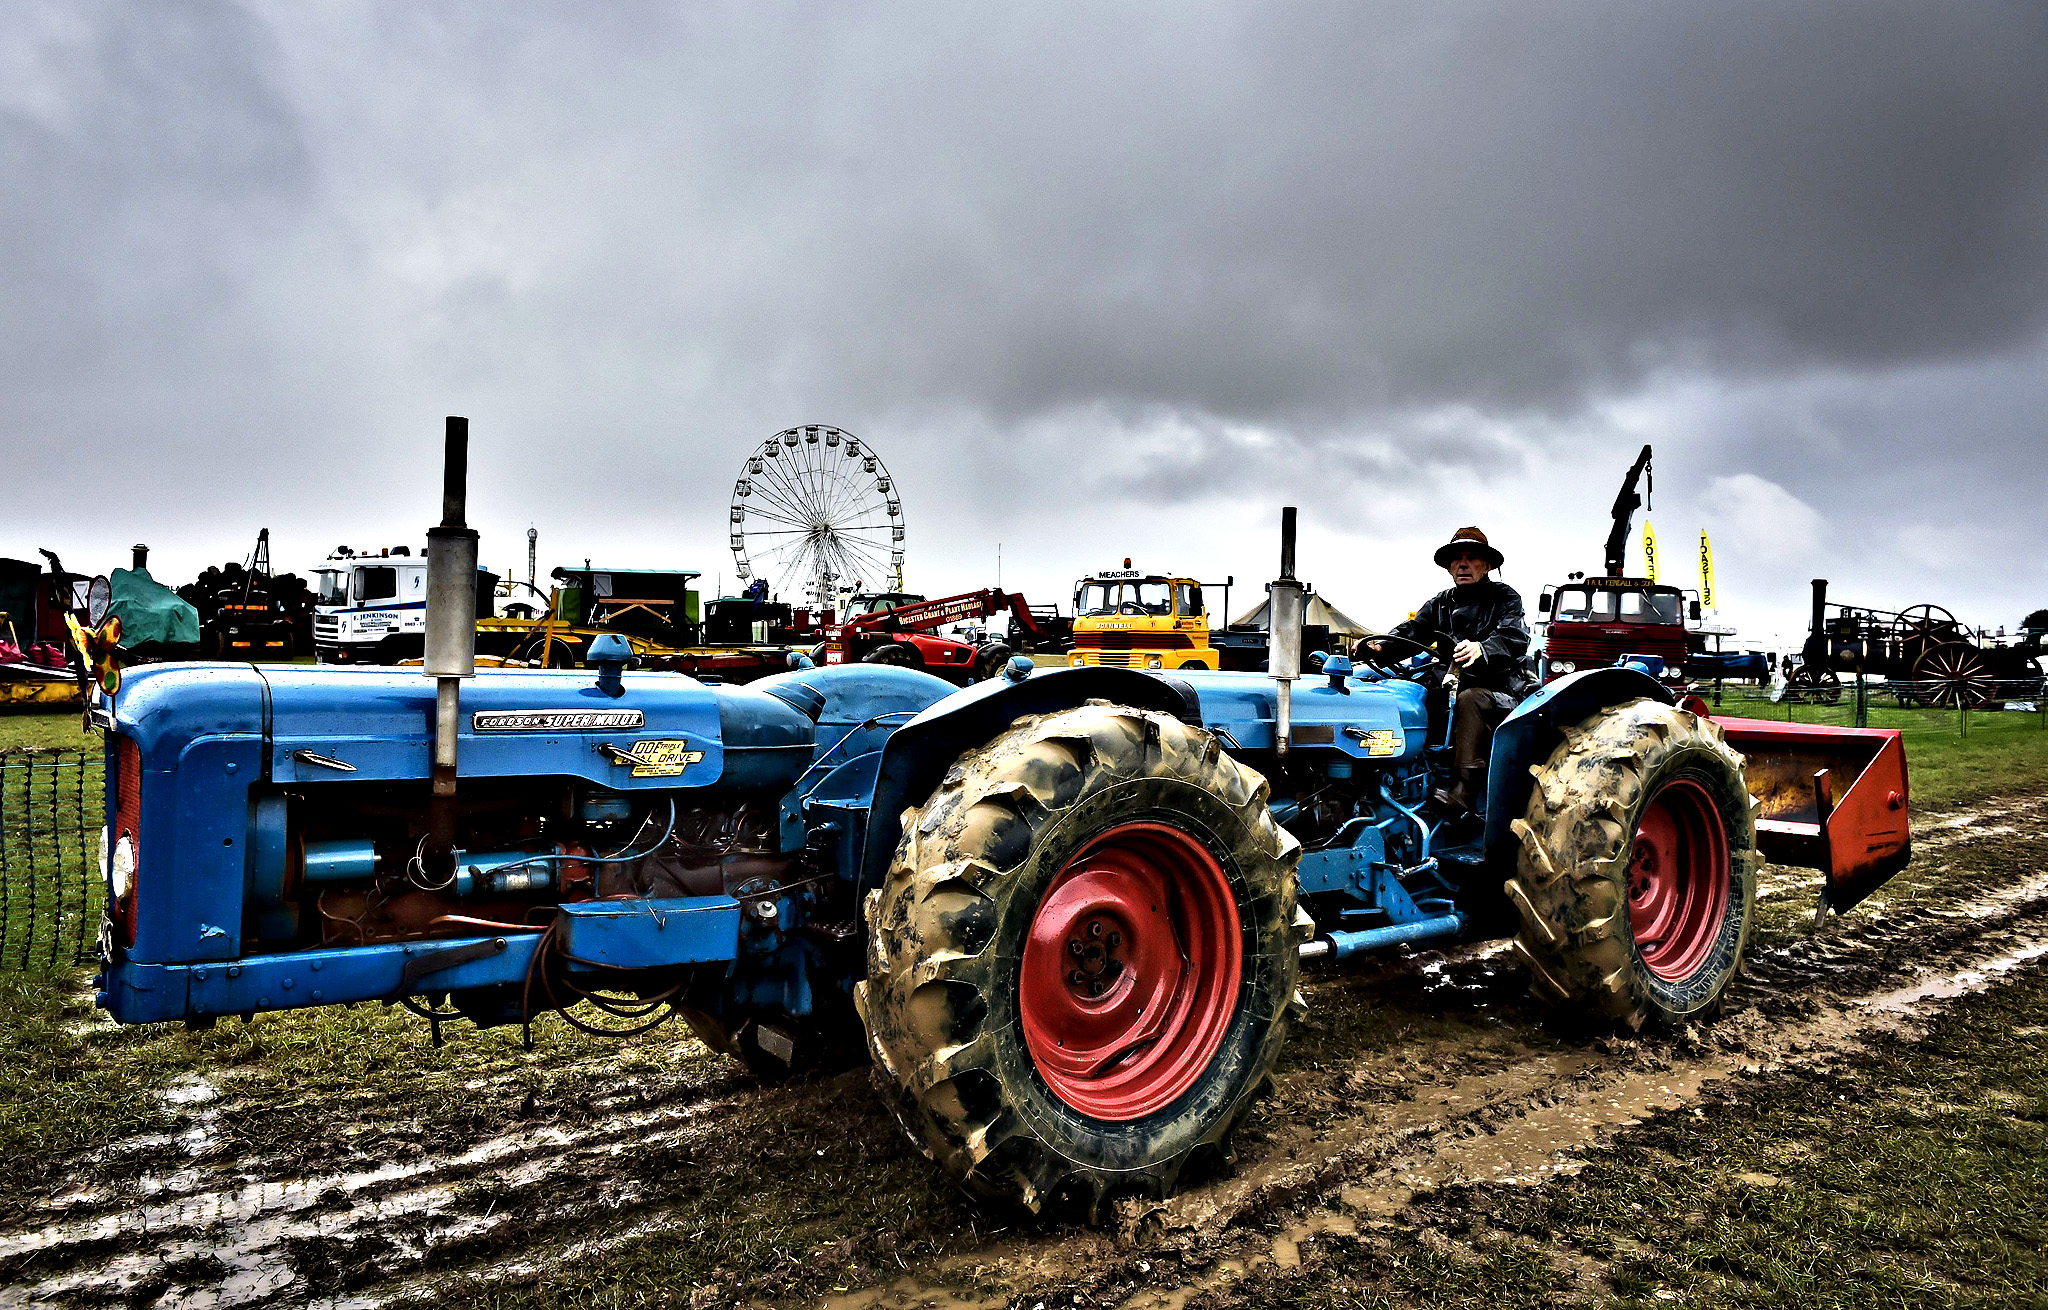 A double Fordson tractor at the Great Dorset Steam Fair, where hundreds of period steam traction engines and heavy mechanical equipment are being set up for the annual Dorset gathering of steam enthusiasts. PRESS ASSOCIATION Photo. Picture date: Tuesday August, 26, 2014.